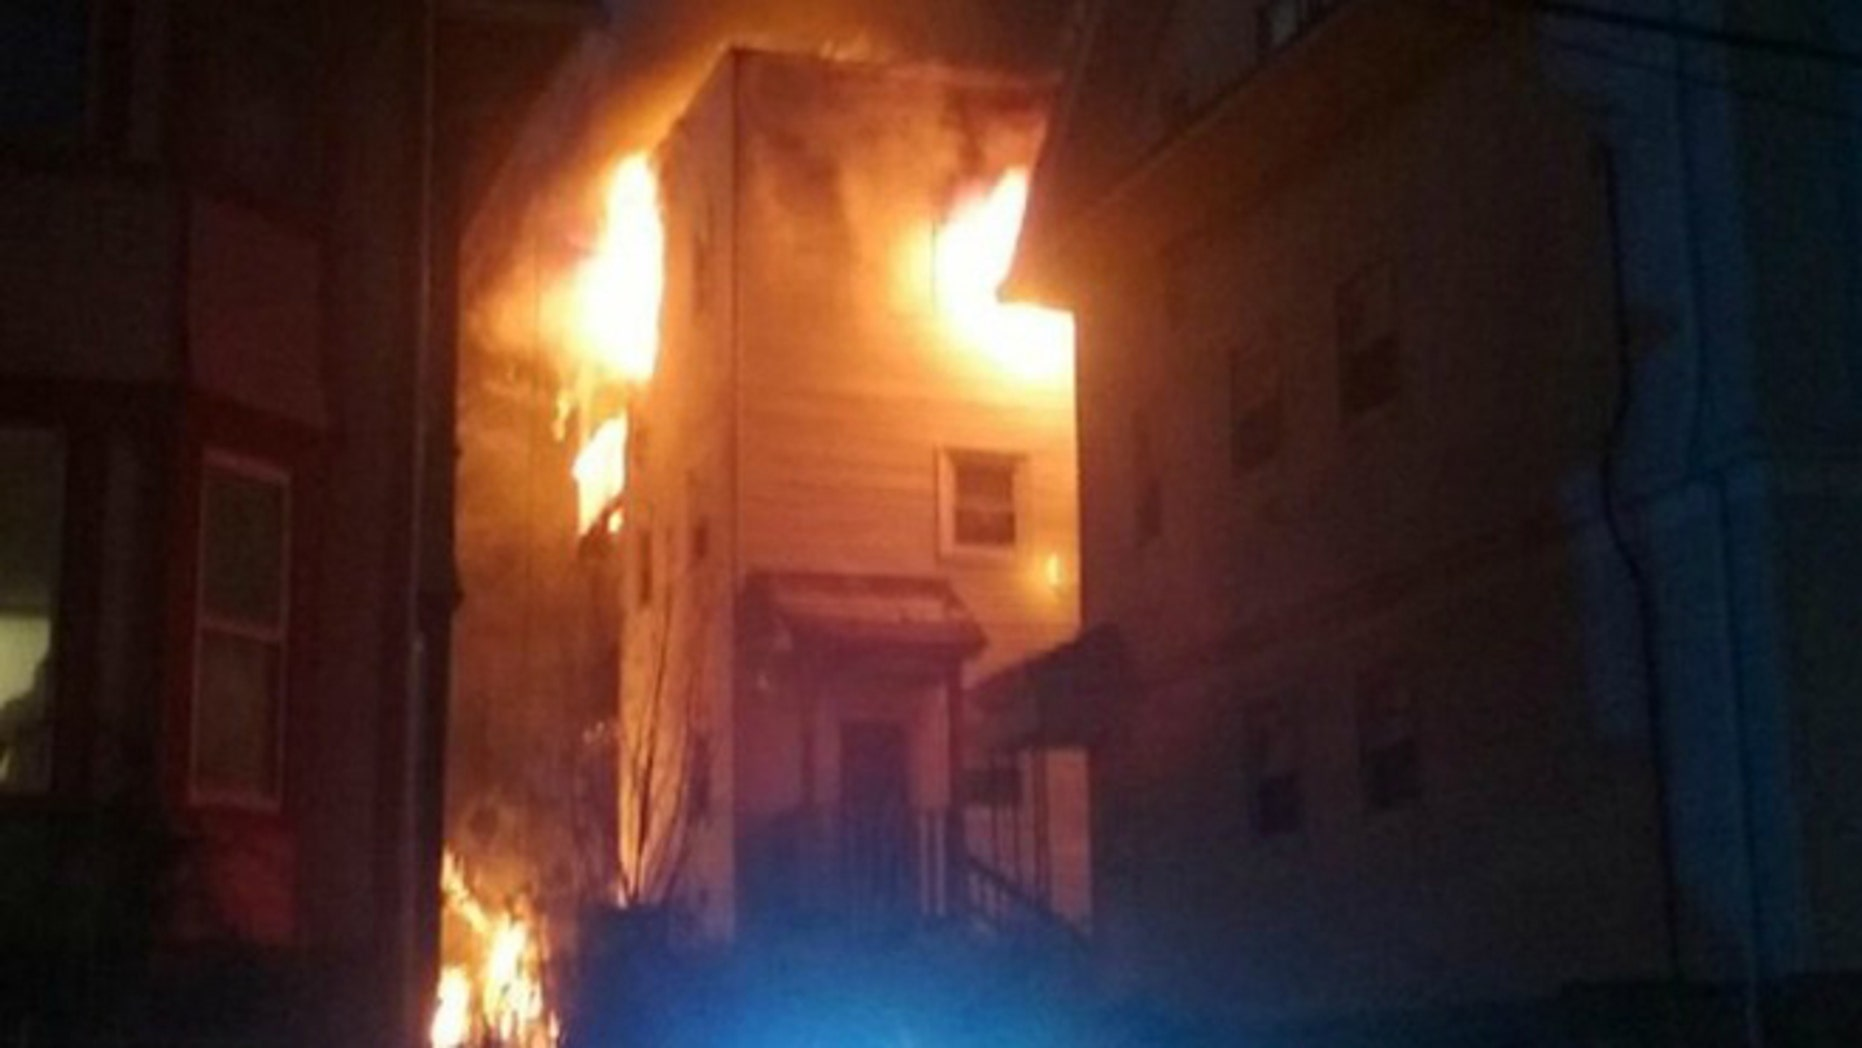 The burning townhouse in Dorchester where Officer Luis Lopez helped saved 18 residents. (Photo: MyFoxBoston)